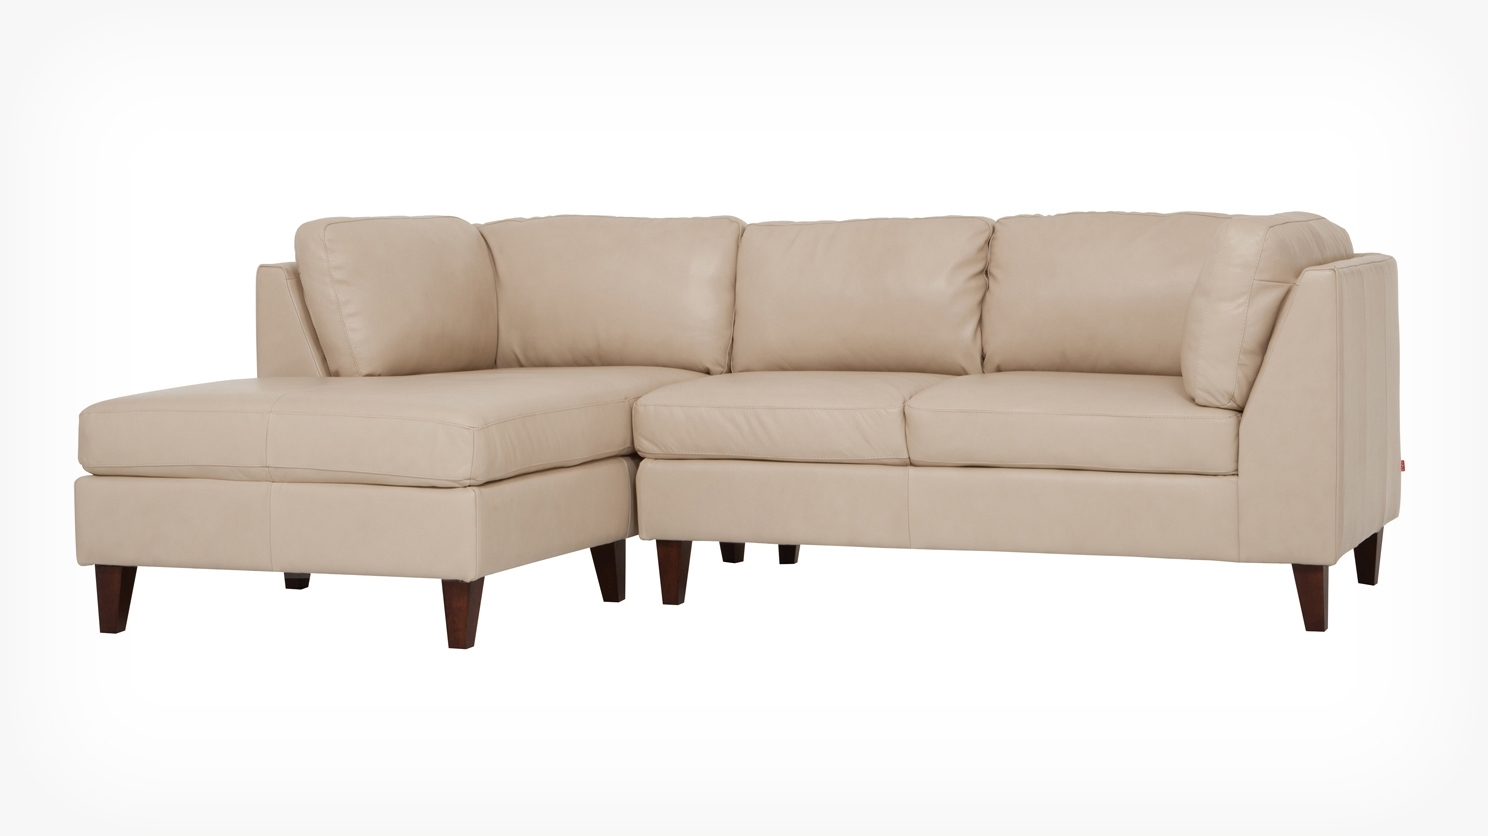 Eq3 | Salema 2 Piece Sectional Sofa With Chaise – Leather In Eq3 Sectional Sofas (Image 10 of 10)